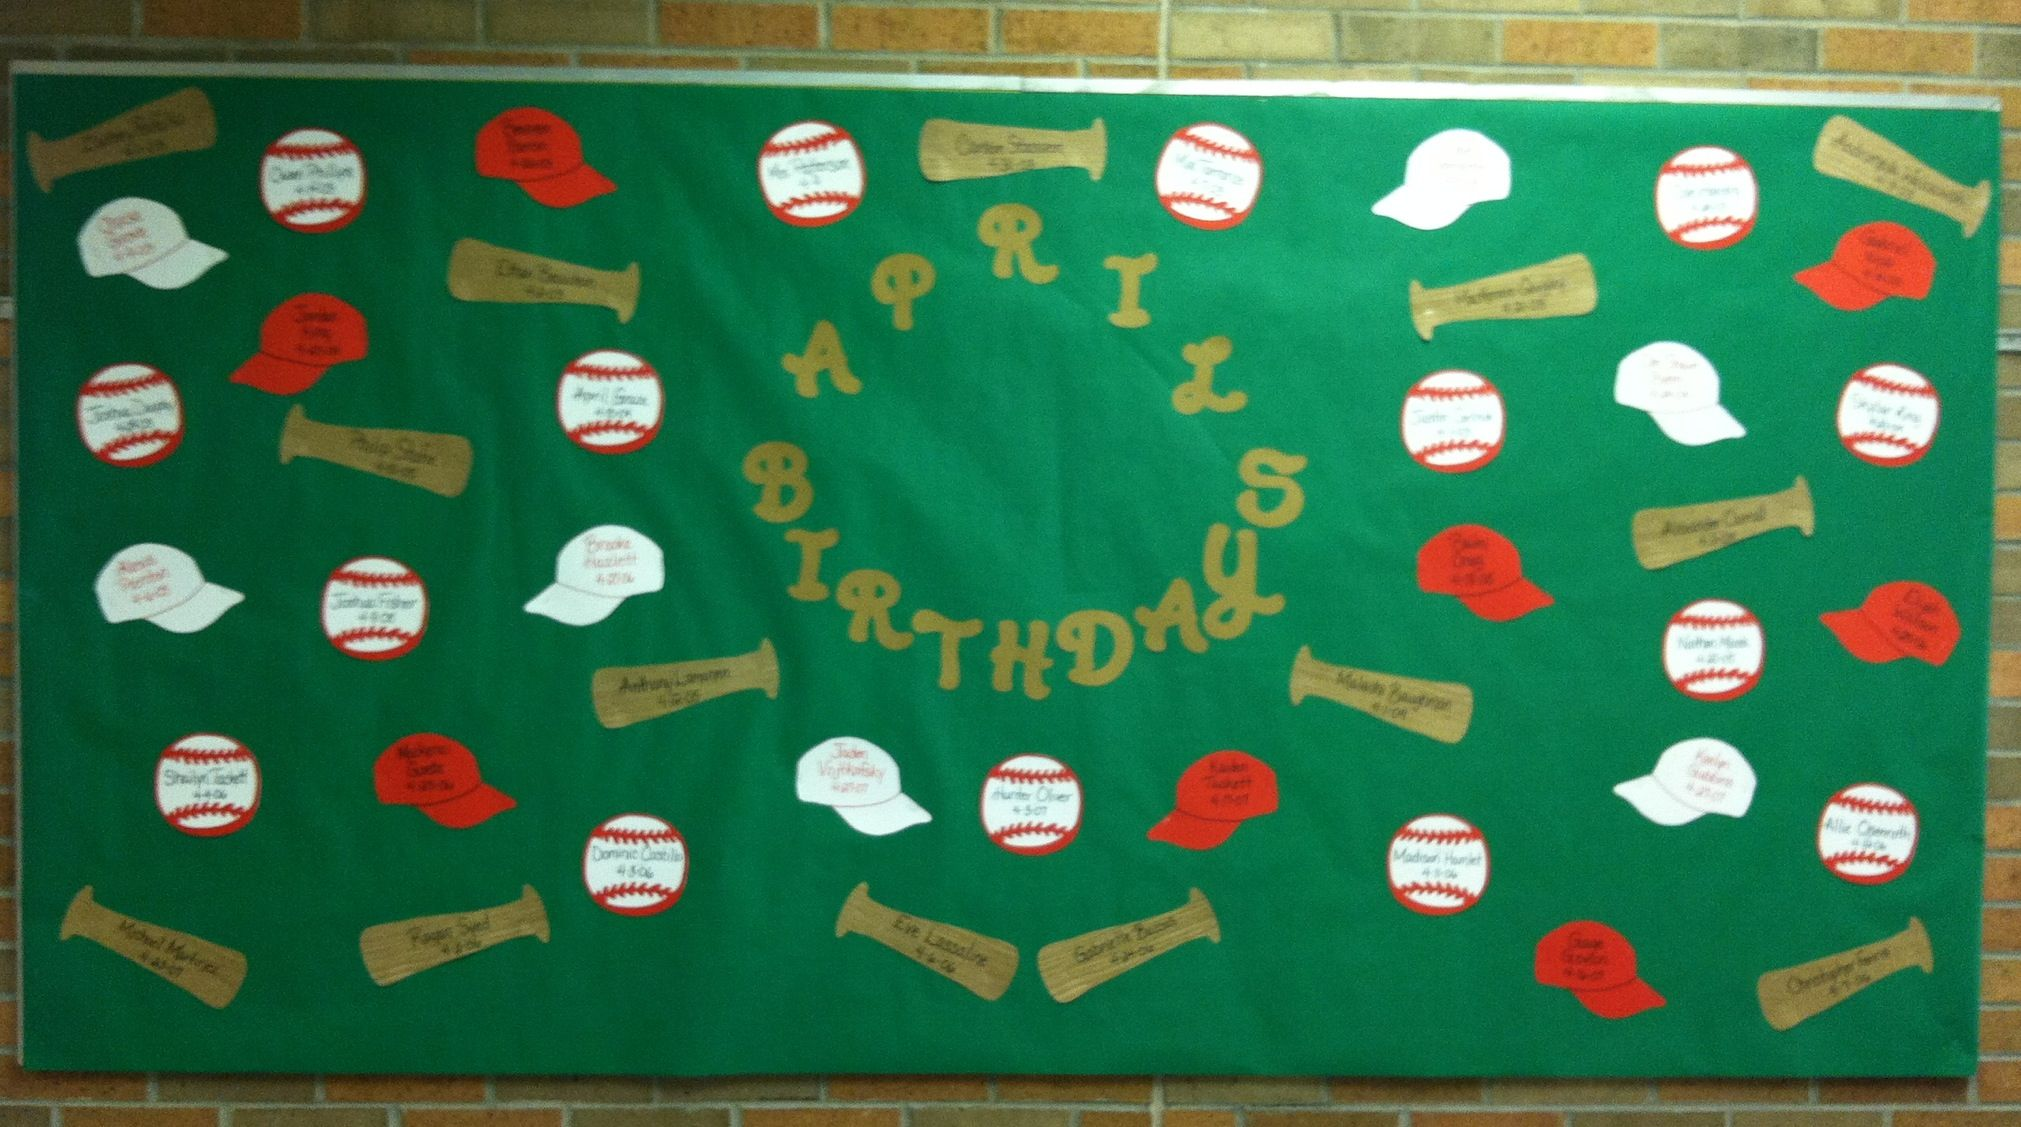 April Birthdays Bulletin Board created in honor of the opening of Baseball Season! Baseballs, Bats, and Baseball Hats